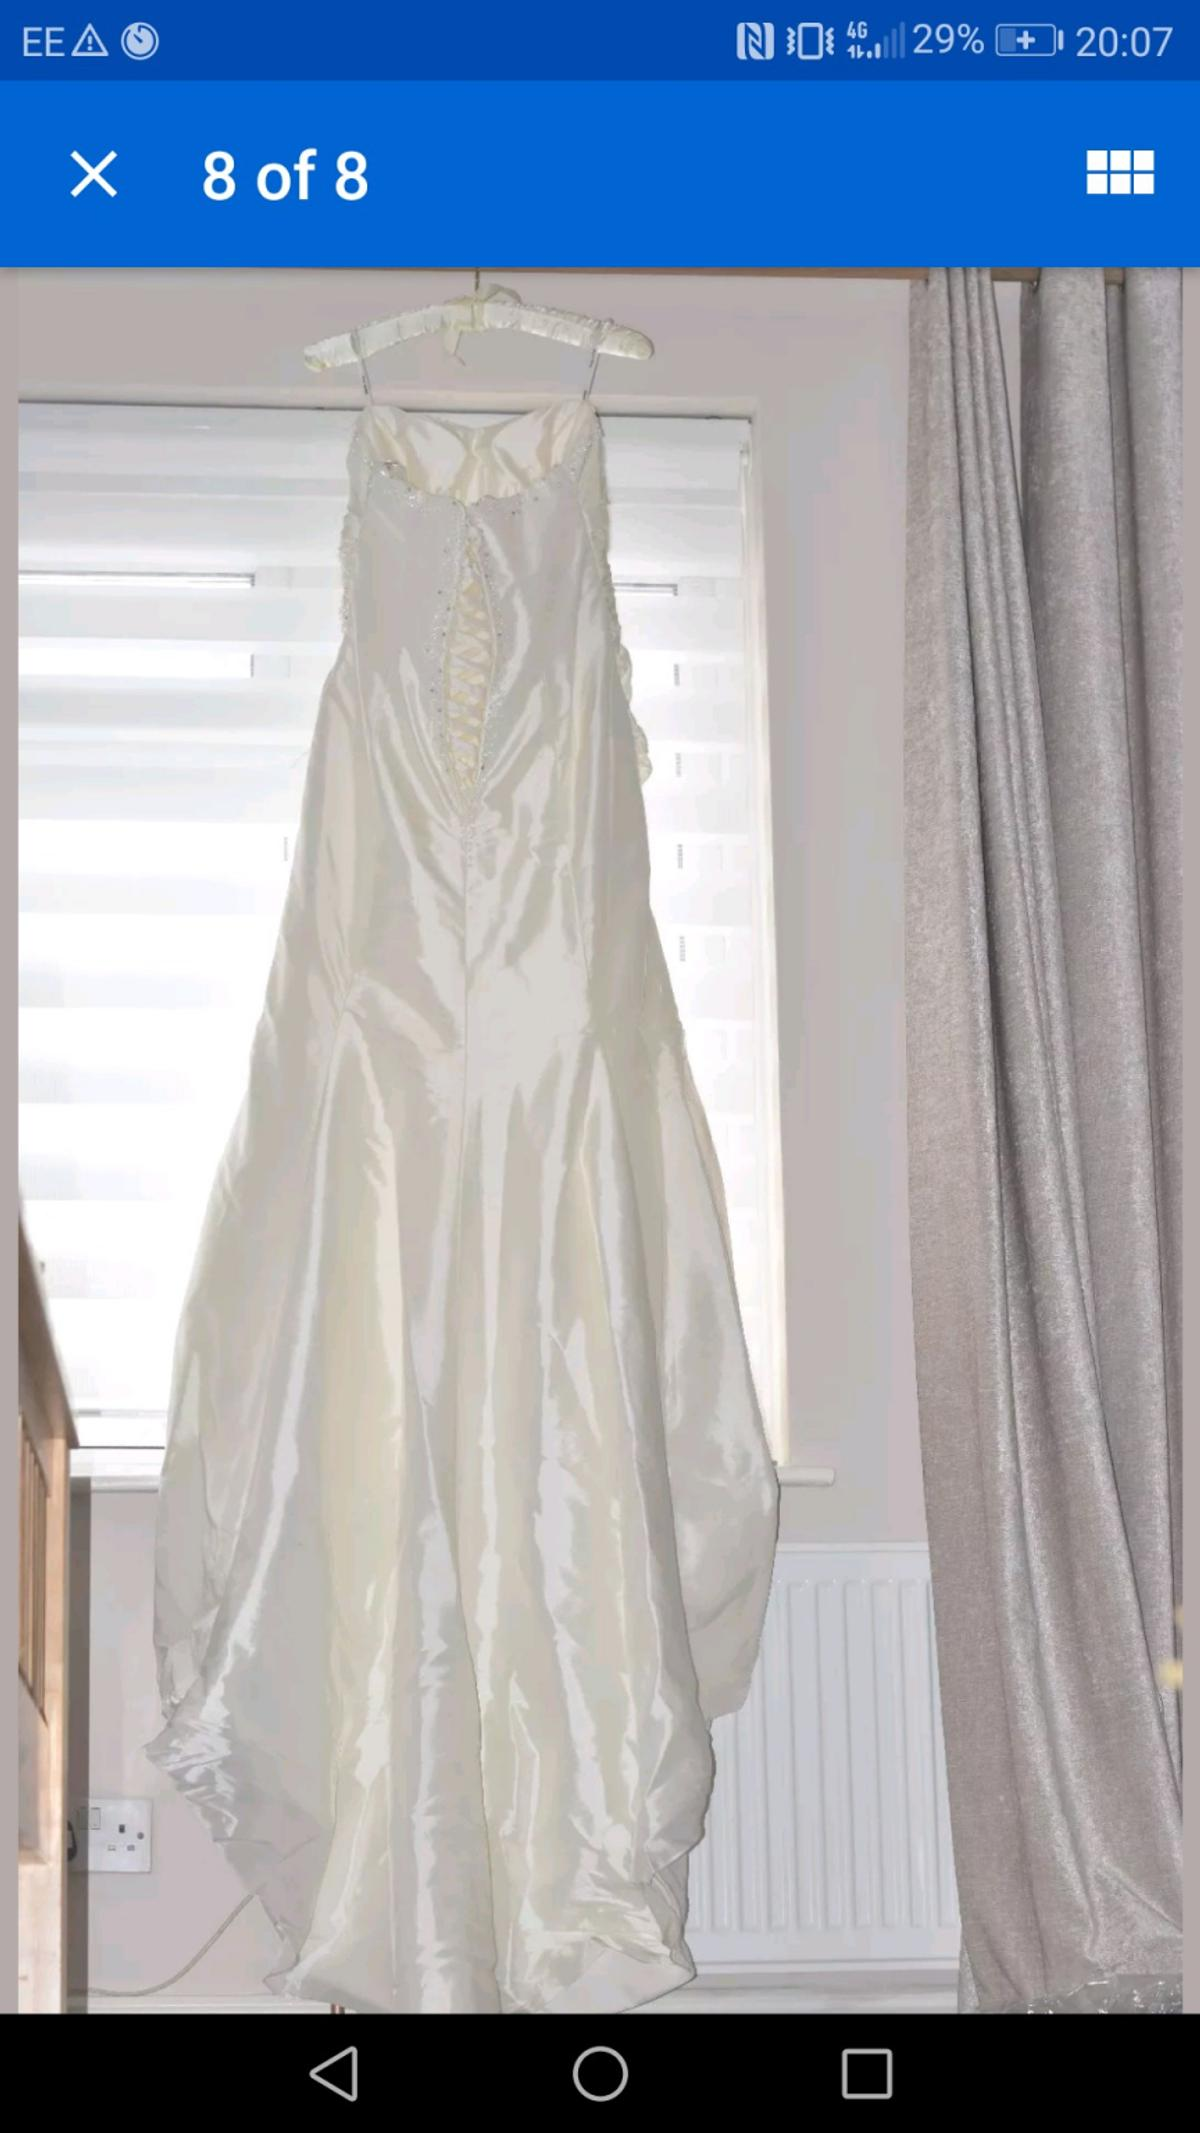 Wedding Dress size 18, Ivory, fitted with ruffles and jewelled embellishments, Lace up back and Puddle Train  Bought butchose another dress for my wedding. Requires a steam to remove creases. Very slimming shape and adjustable due to lace up. Collection only